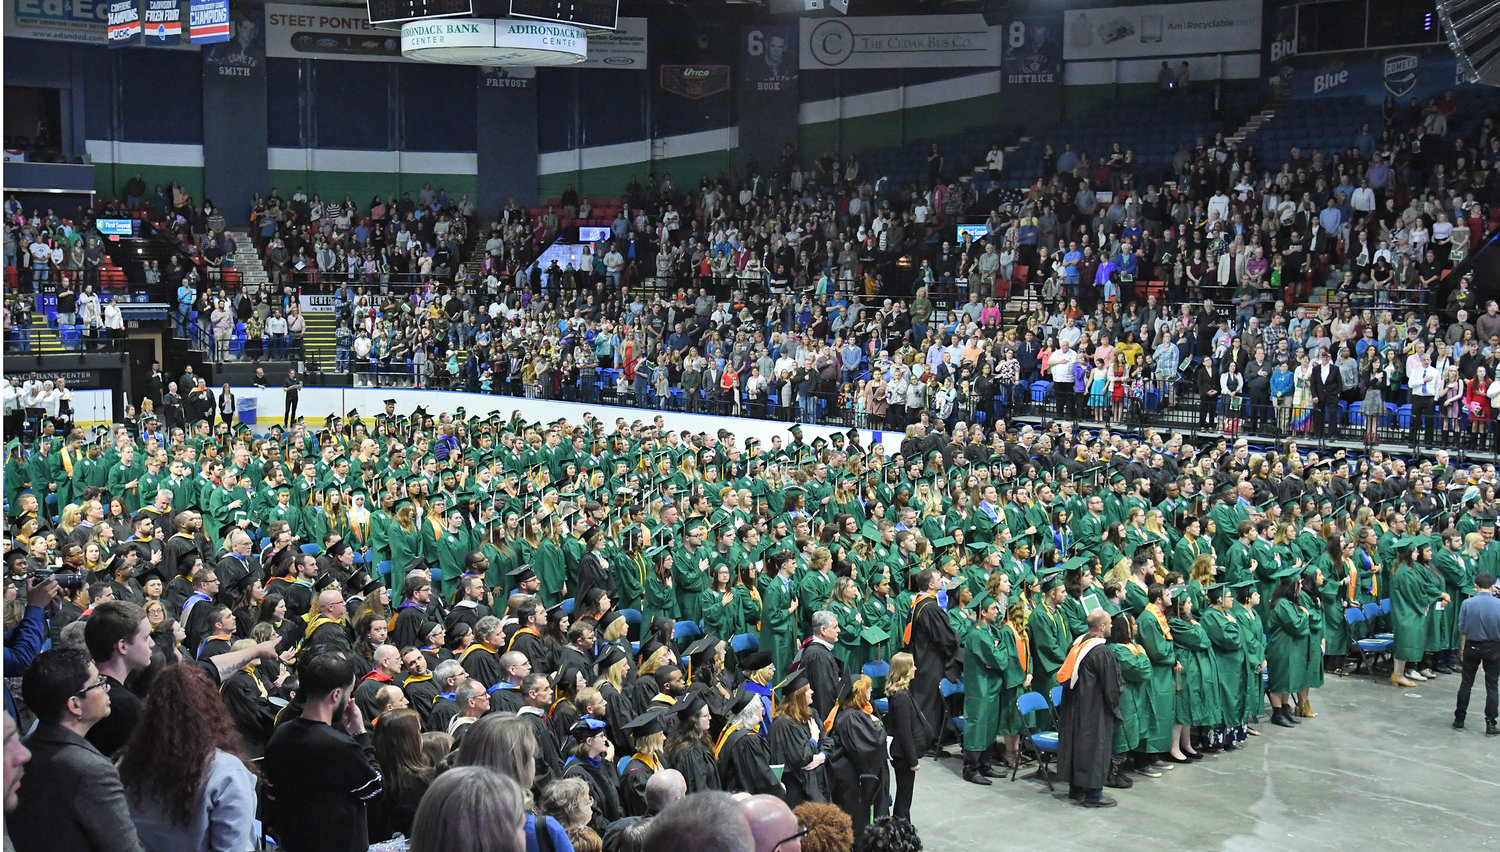 FILLED TO THE RAFTERS — A large crowd along with the candidates for graduation from Mohawk Valley Community College stand for the national anthem Thursday at the Adirondack Bank Center in Utica. More than 1,120 students at MVCC were eligible to walk the stage to receive their associates degrees or certificates, the college announced. This year's graduates join MVCC's more than 48,000 living alumni on record who have completed their studies at either, or both, of the college's campuses in Rome and Utica.